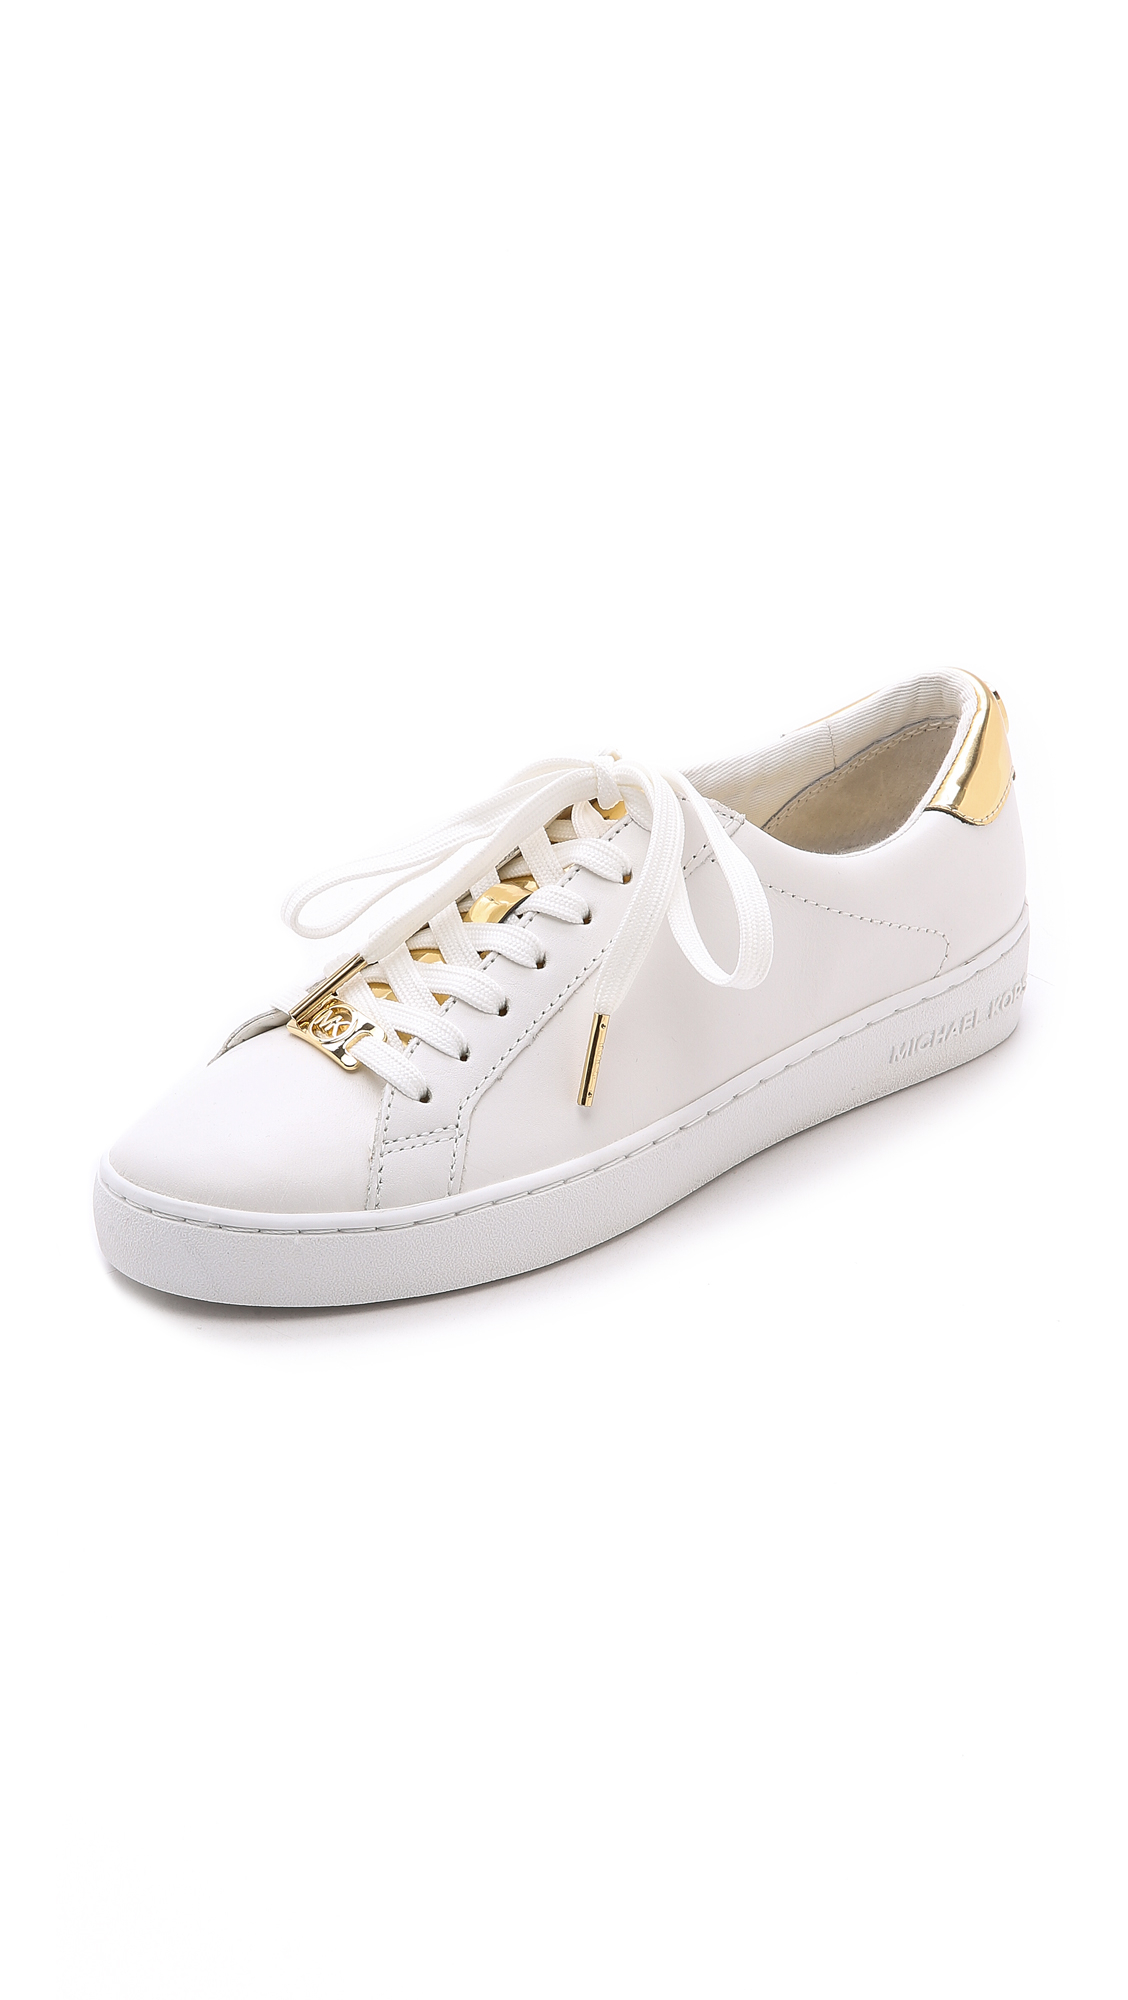 71997ade0 MICHAEL Michael Kors Irving Lace Up Sneakers - Optic/Pale Gold in ...